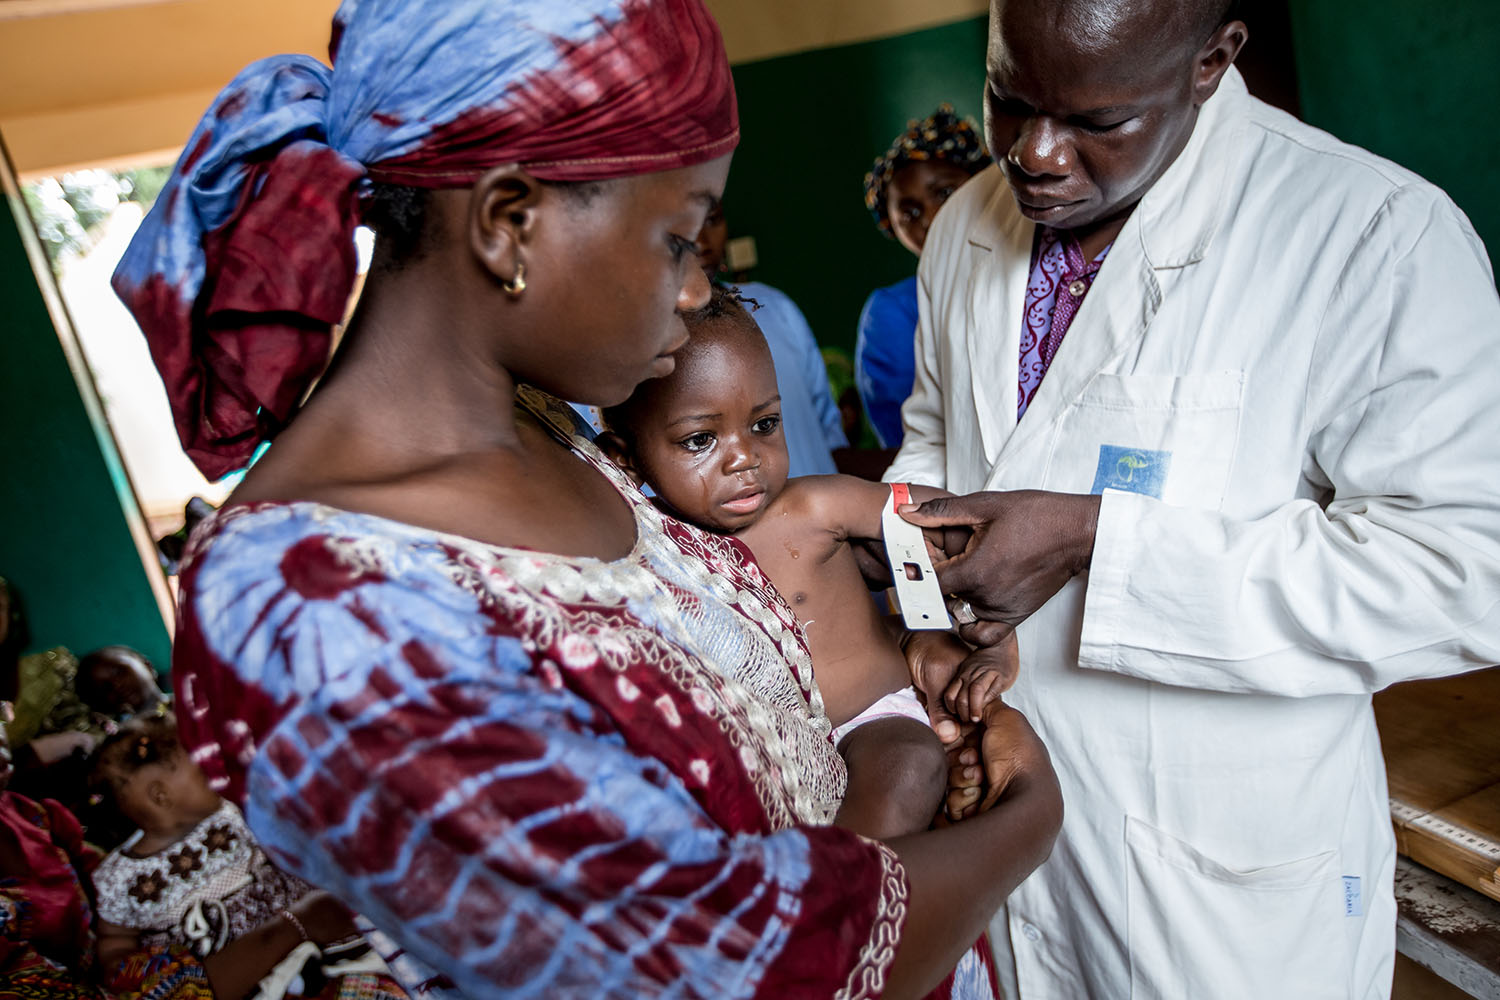 Awa and Nantene at the CScom Wayerma1 Health Centre, SIkasso  where the doctor checks Nantene's MUAC (measurement upper arm circumference) UNICEF continues to emphasise prevention activities and increasing access to quality care for severely malnourishe